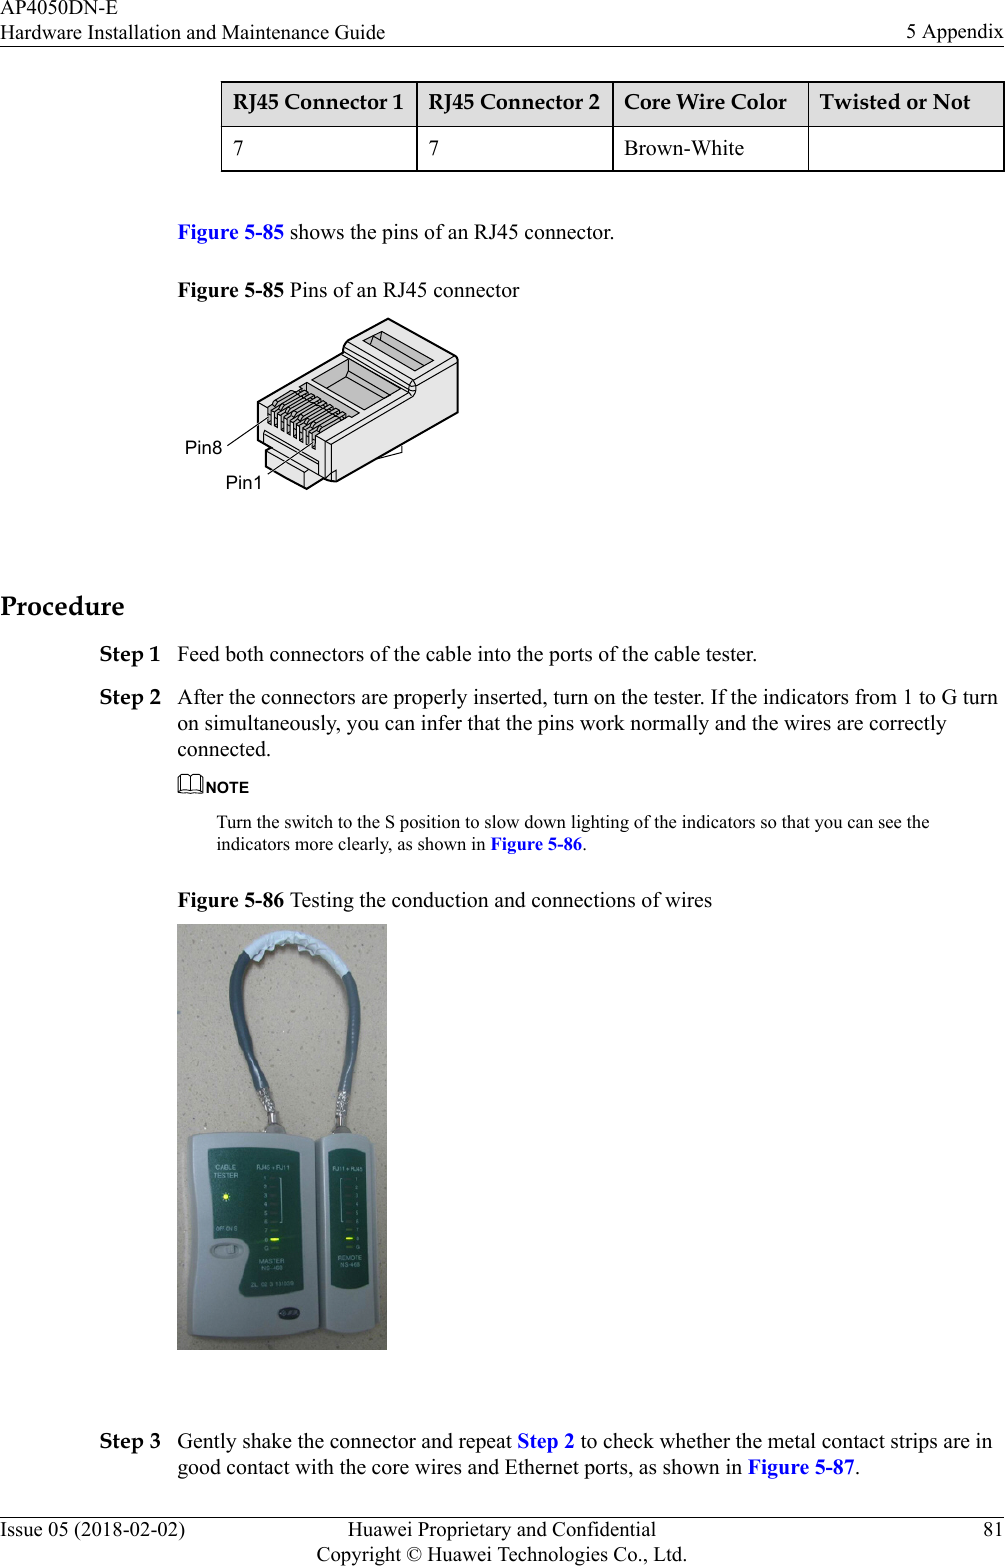 Huawei Technologies Ap4050dn E Wireless Lan Access Point User Manual Rj45 Wiring Diagram Wikipedia Connector 1 2 Core Wire Color Twisted Or Not7 7 Brown White